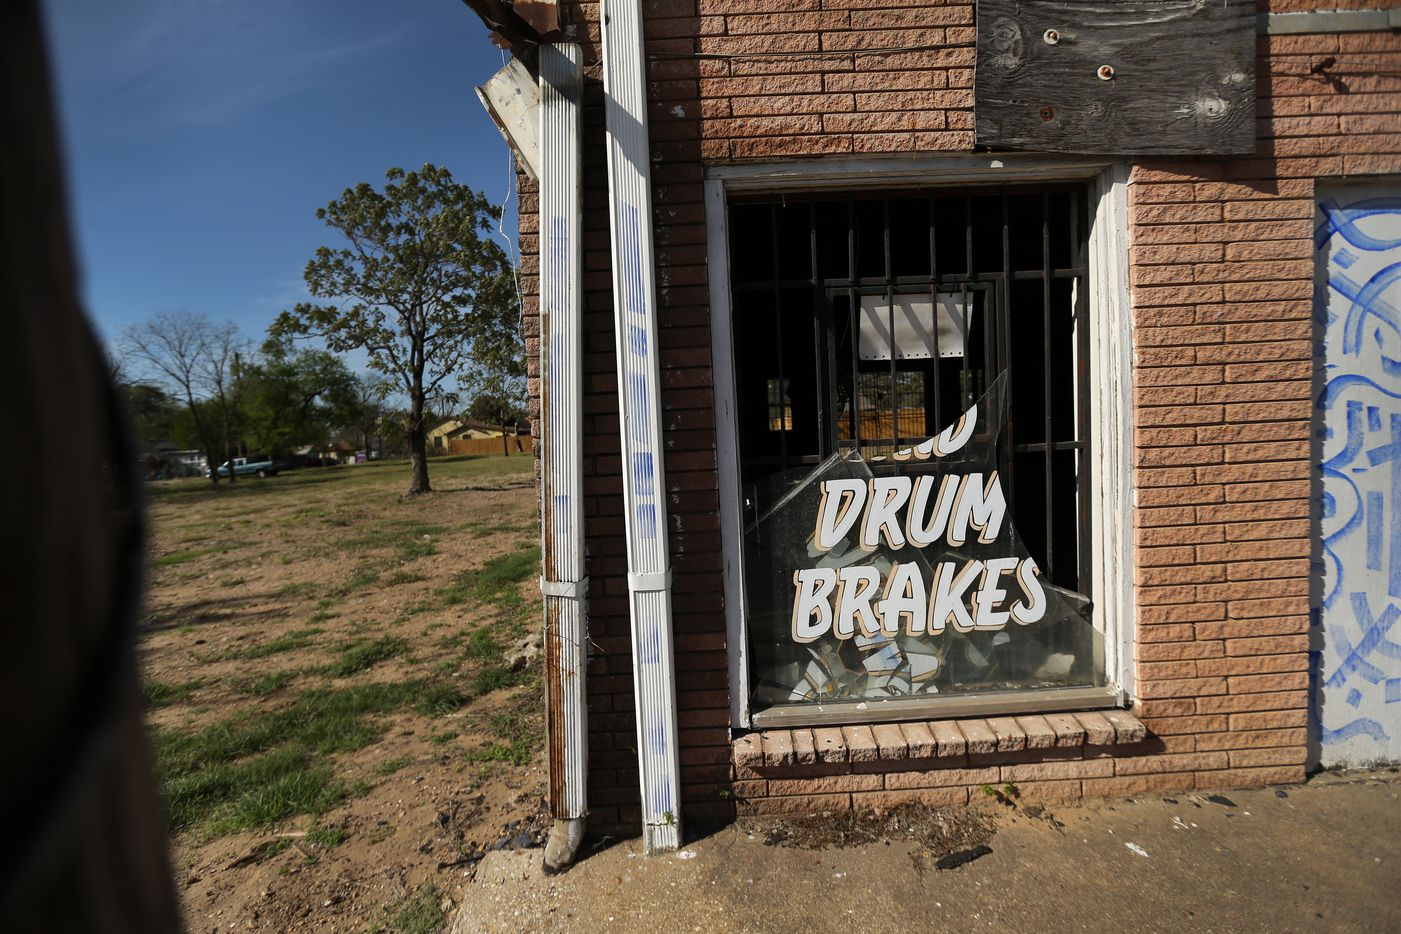 Welded bars over business doors on Singleton Ave, like this broken window from a former automotive shop, are commonplace in West Dallas near the Margaret Hunt Hill Bridge, Thursday, March 23, 2017. (Tom Fox/The Dallas Morning News)